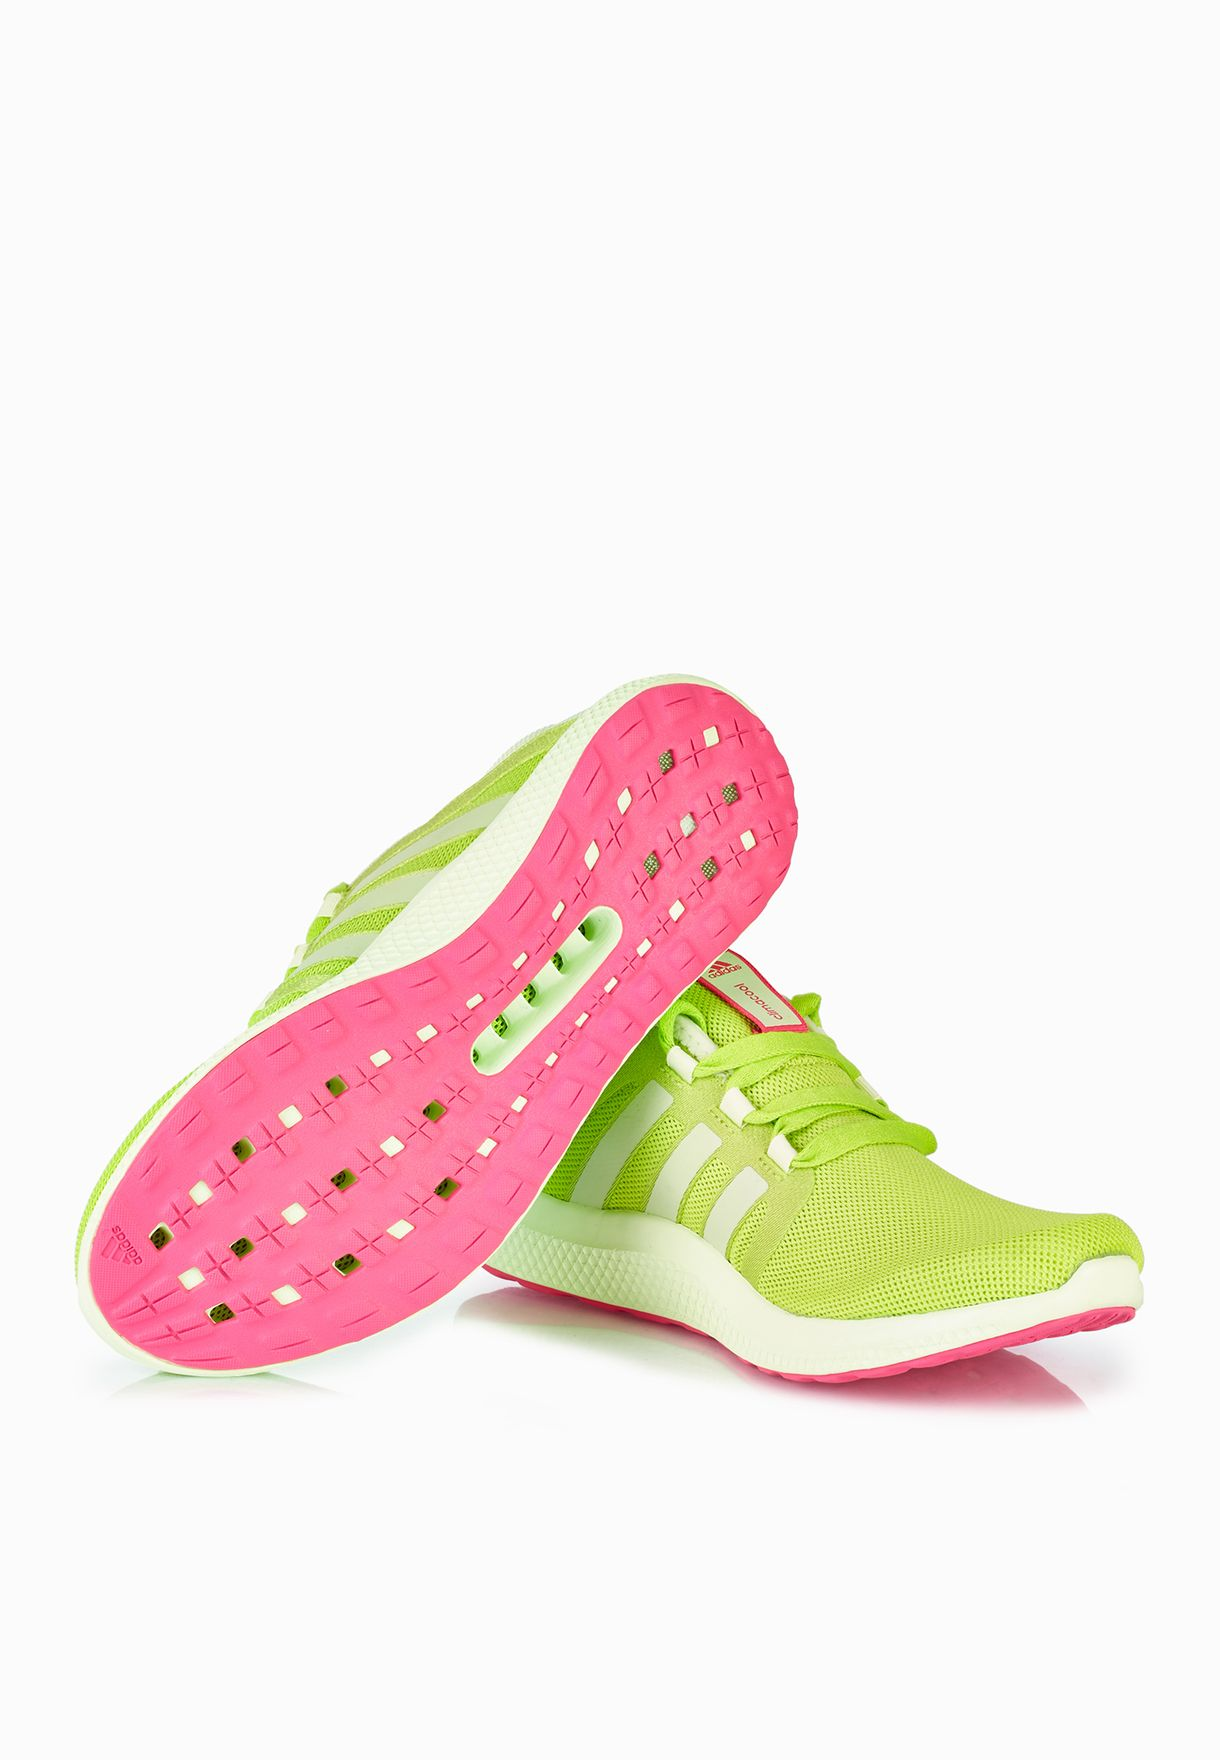 bd6813abbf8e7 Shop adidas green Climacool Fresh Bounce S74432 for Women in Saudi ...